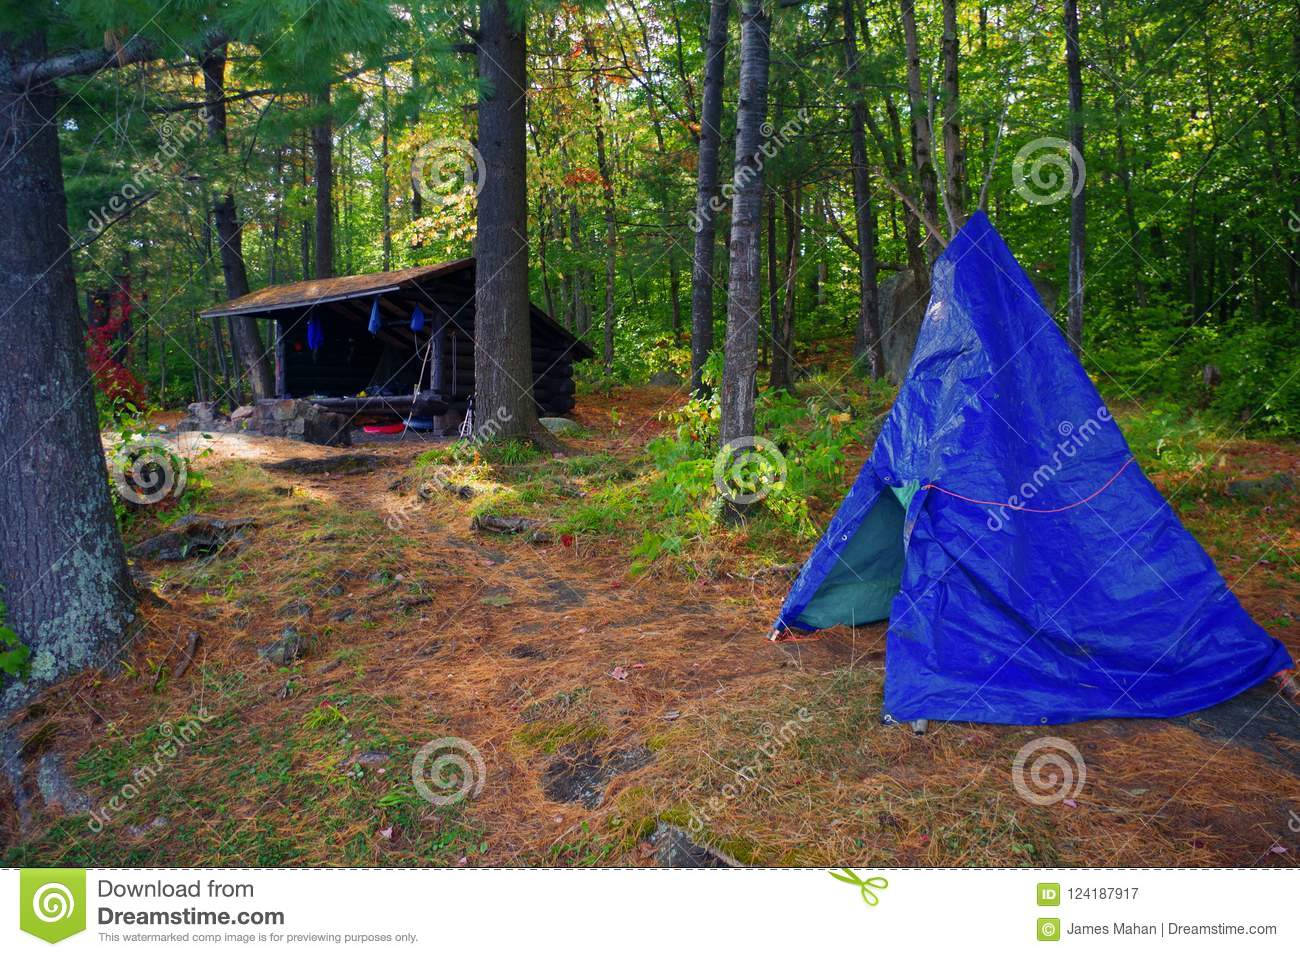 Primitive Bushcraft Campsite with a lean to and a tarp teepee in the Adirondack Mountain Wilderness.